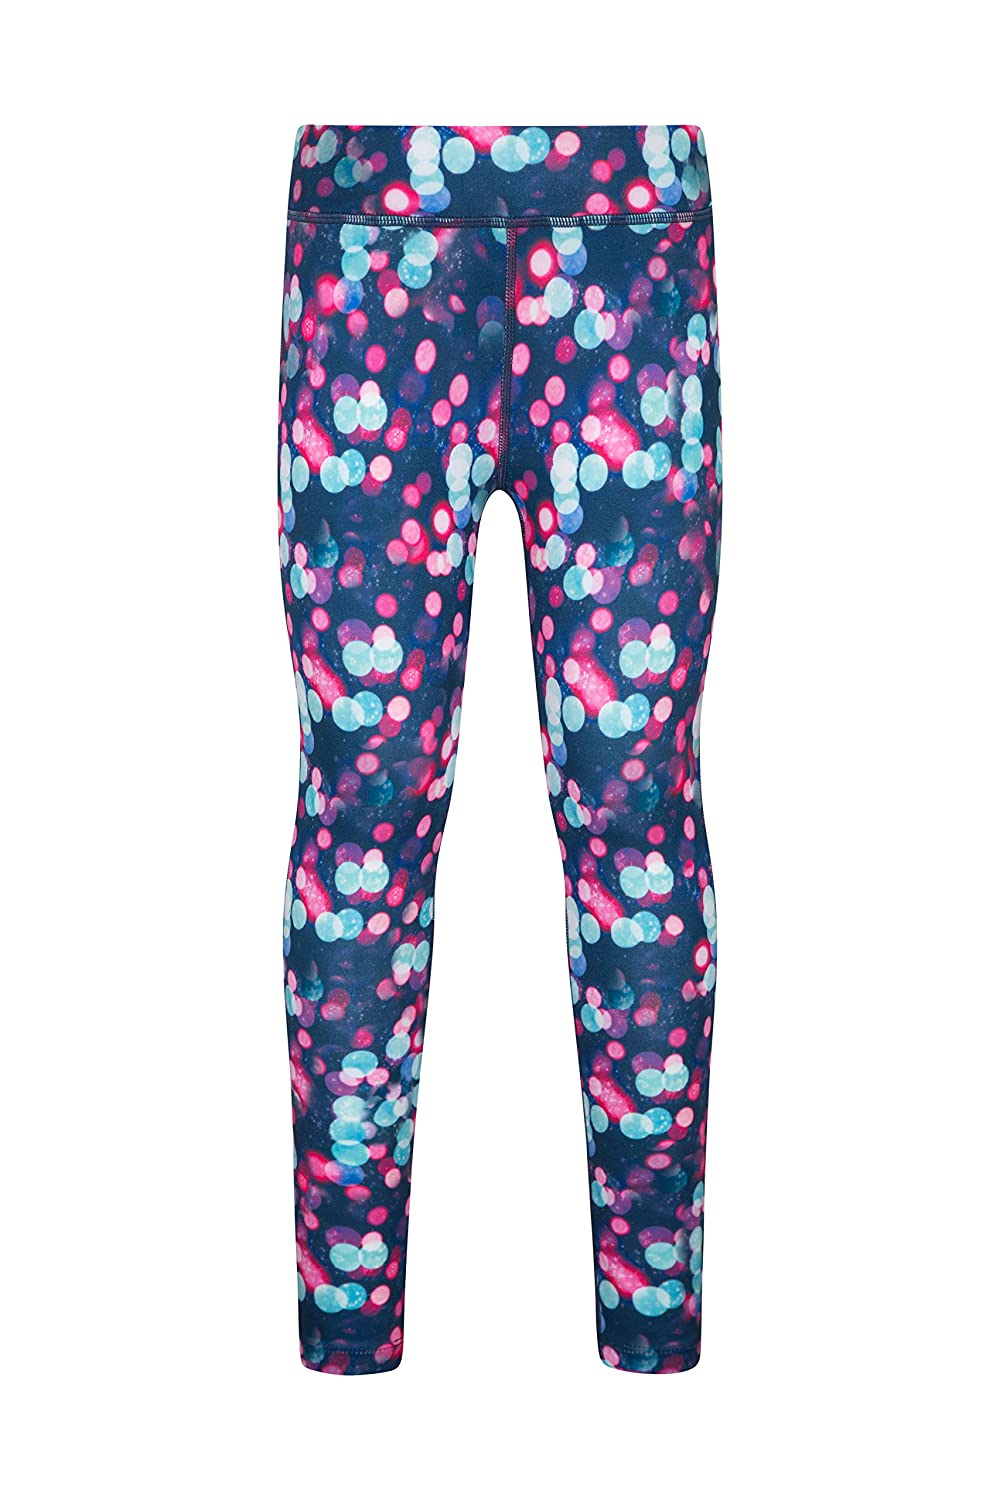 Mountain Warehouse Printed Girls Leggings - Lightweight Kids Tights, Stretchable Walking Leggings, Quick Wicking & Antipill Pants - for Winter Running, Cycling & Sports